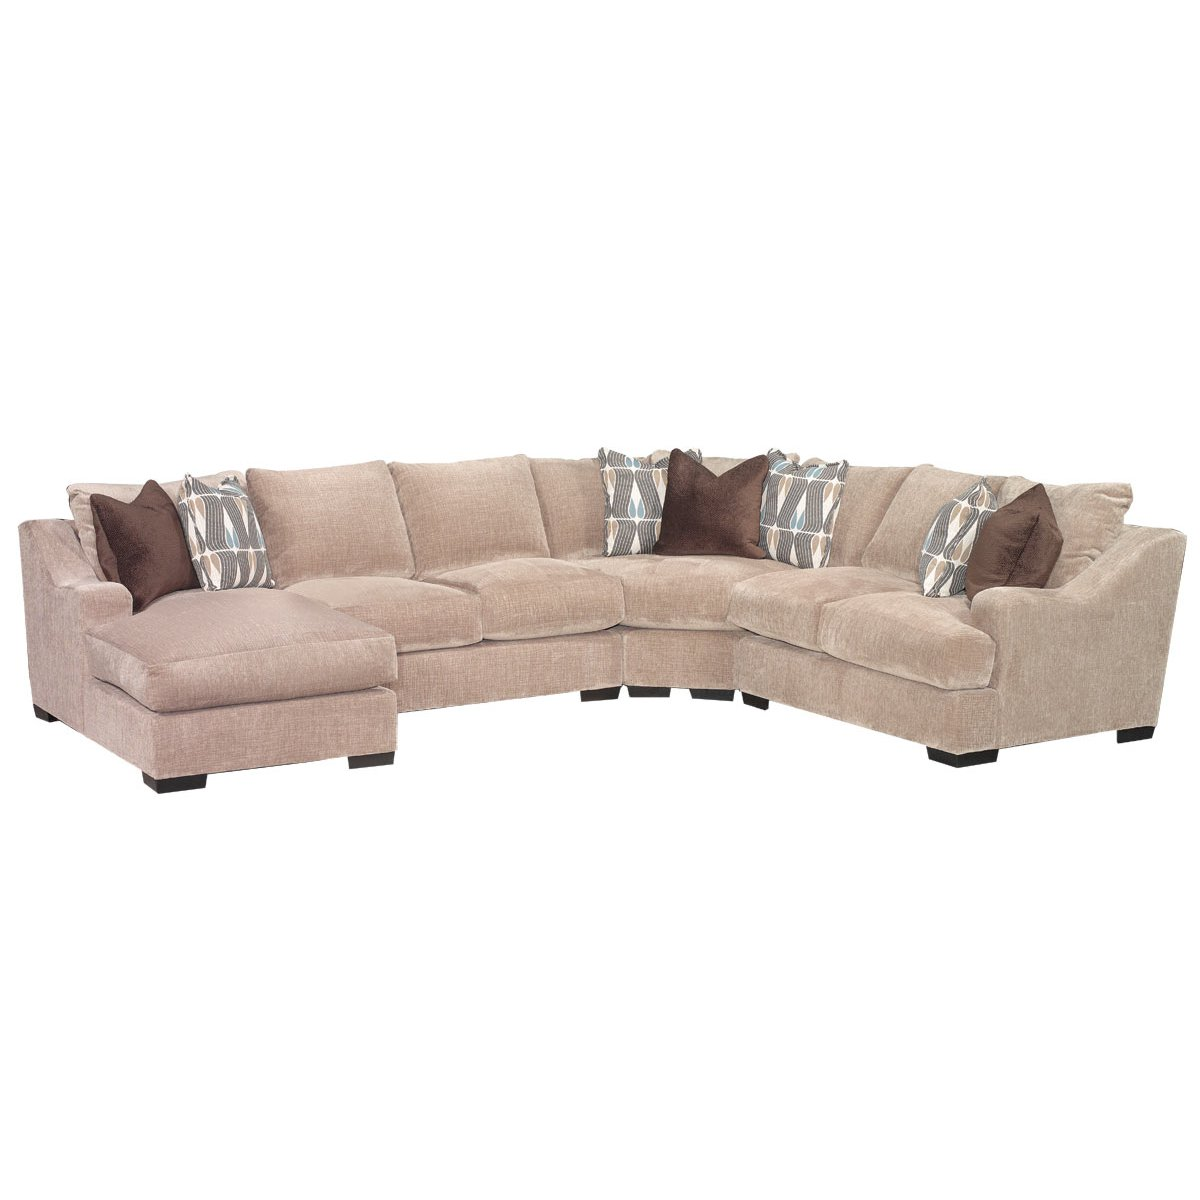 4 Piece Sectional Sofa Gybson Earth Grey 4 Piece Sofa